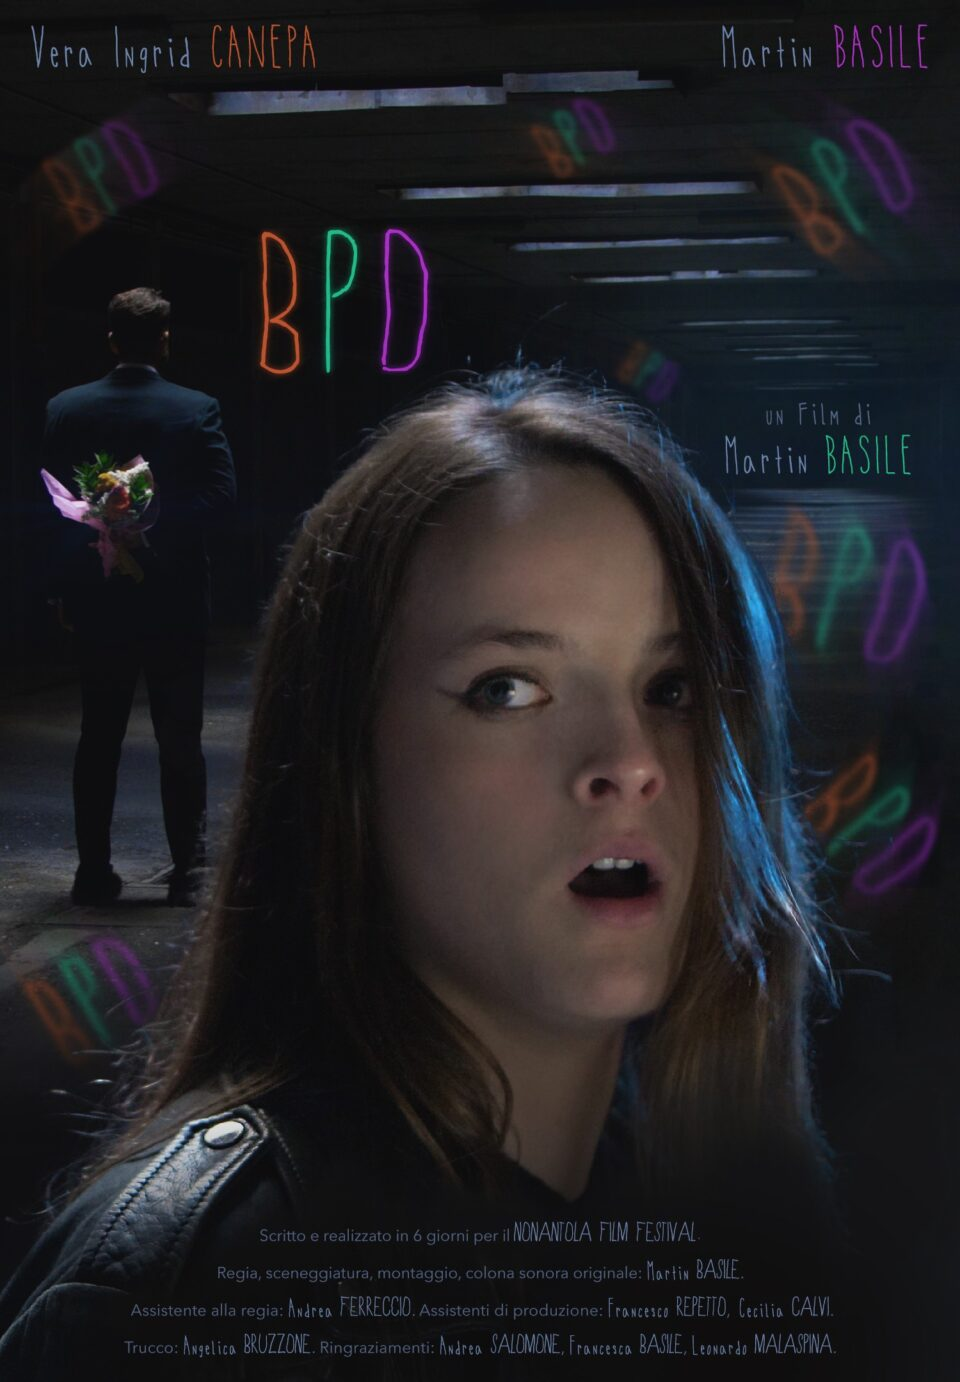 BPD - A short film about Borderline Personality Disorder by Martin Basile